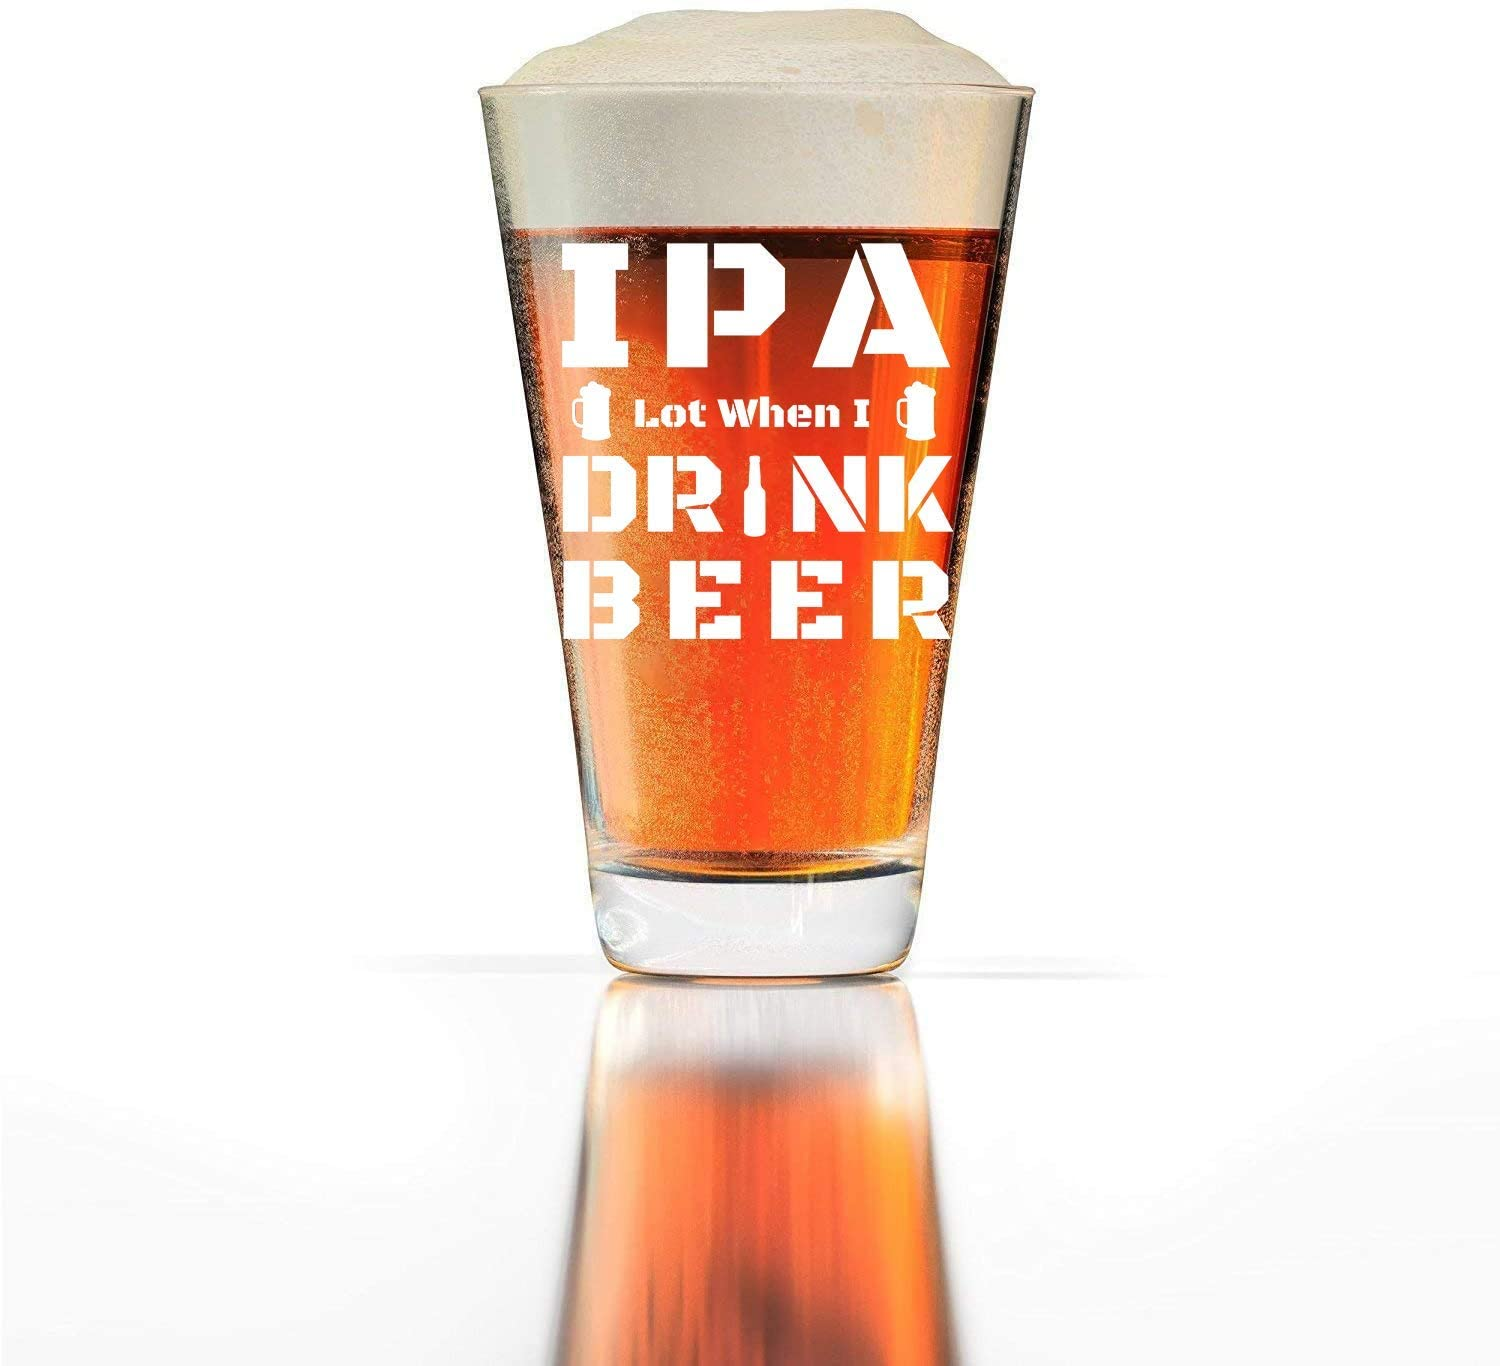 IPA Lot When I Drink Beer Funny Beer Glass 16oz Pint Beer Glass